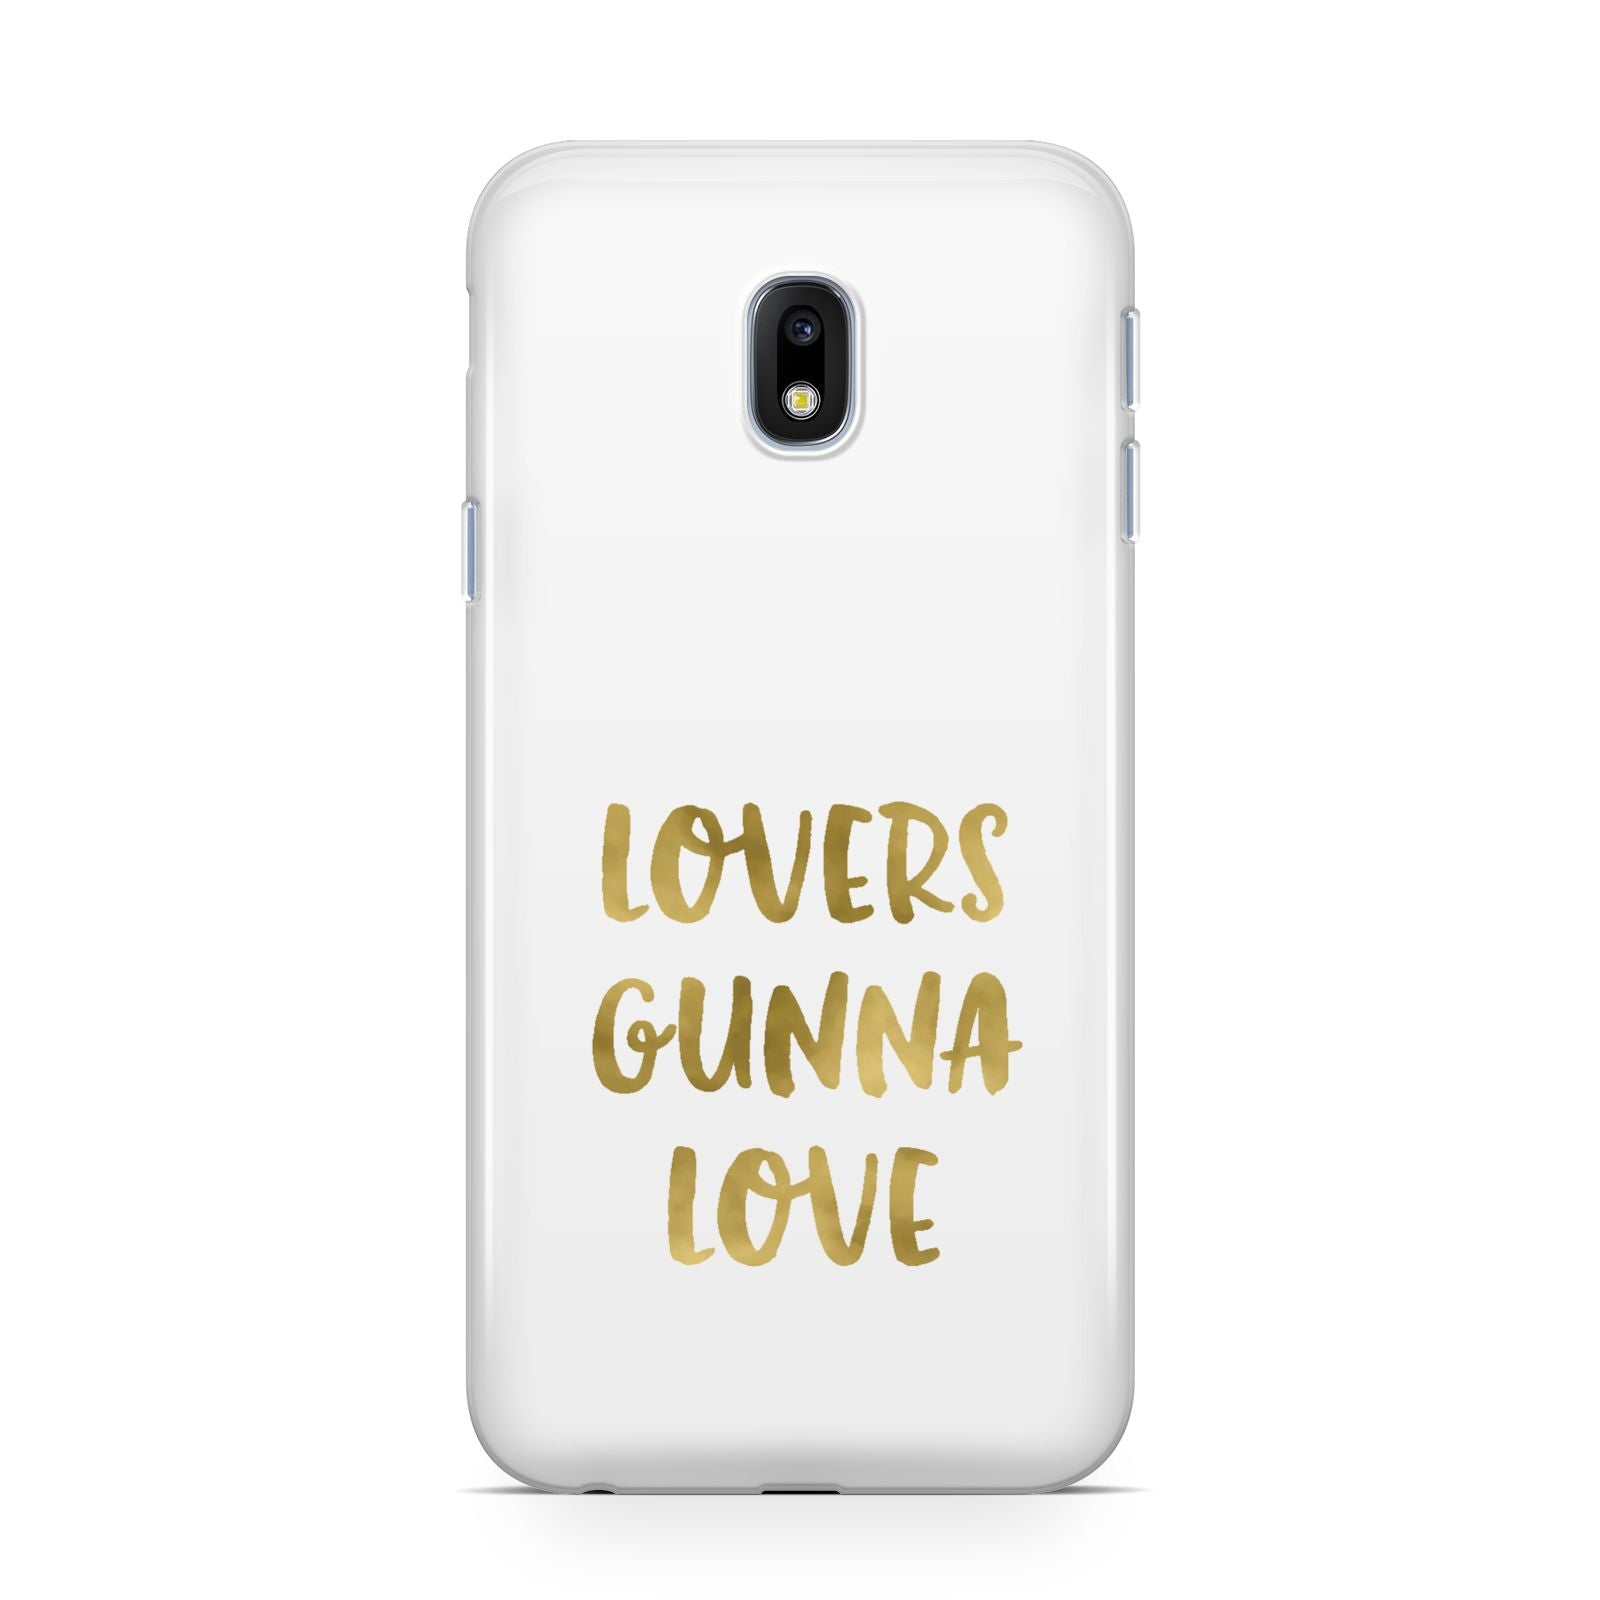 Lovers Gunna Love Real Gold Foil Samsung Galaxy J3 2017 Case